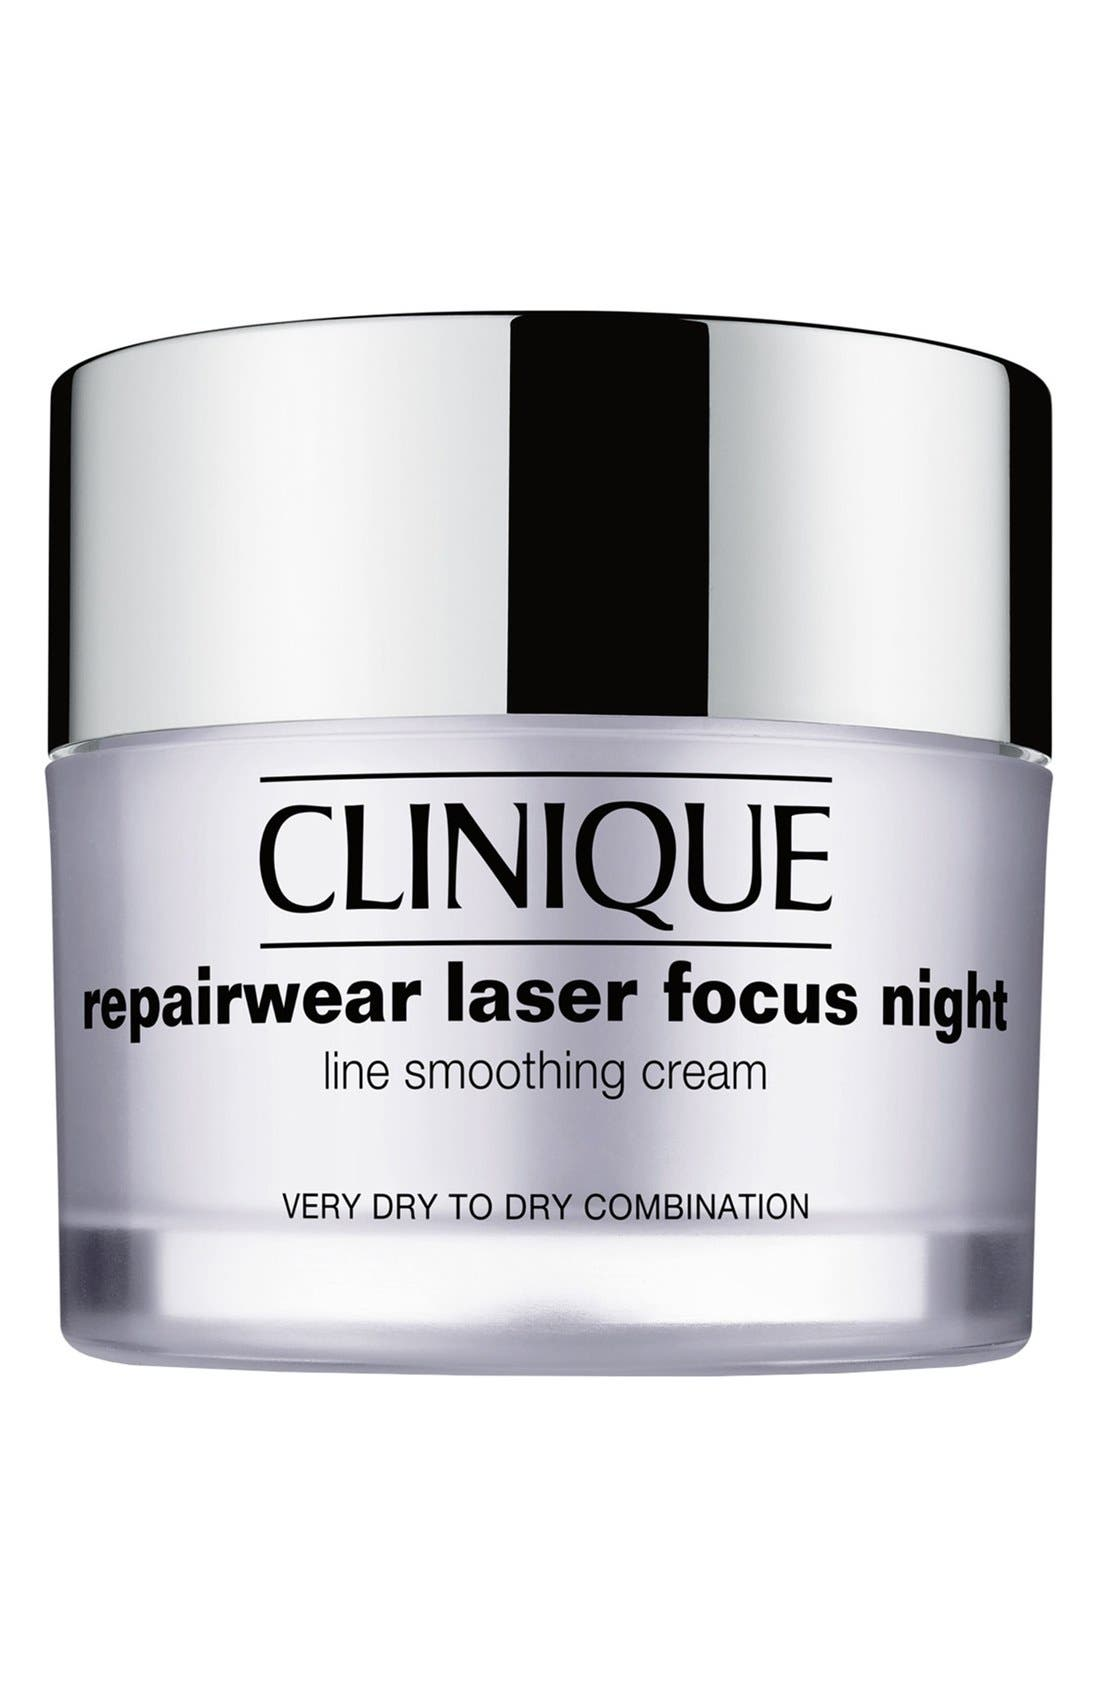 Repairwear Laser Focus Night Line Smoothing Cream,                             Main thumbnail 1, color,                             VERY DRY TO DRY COMBINATION